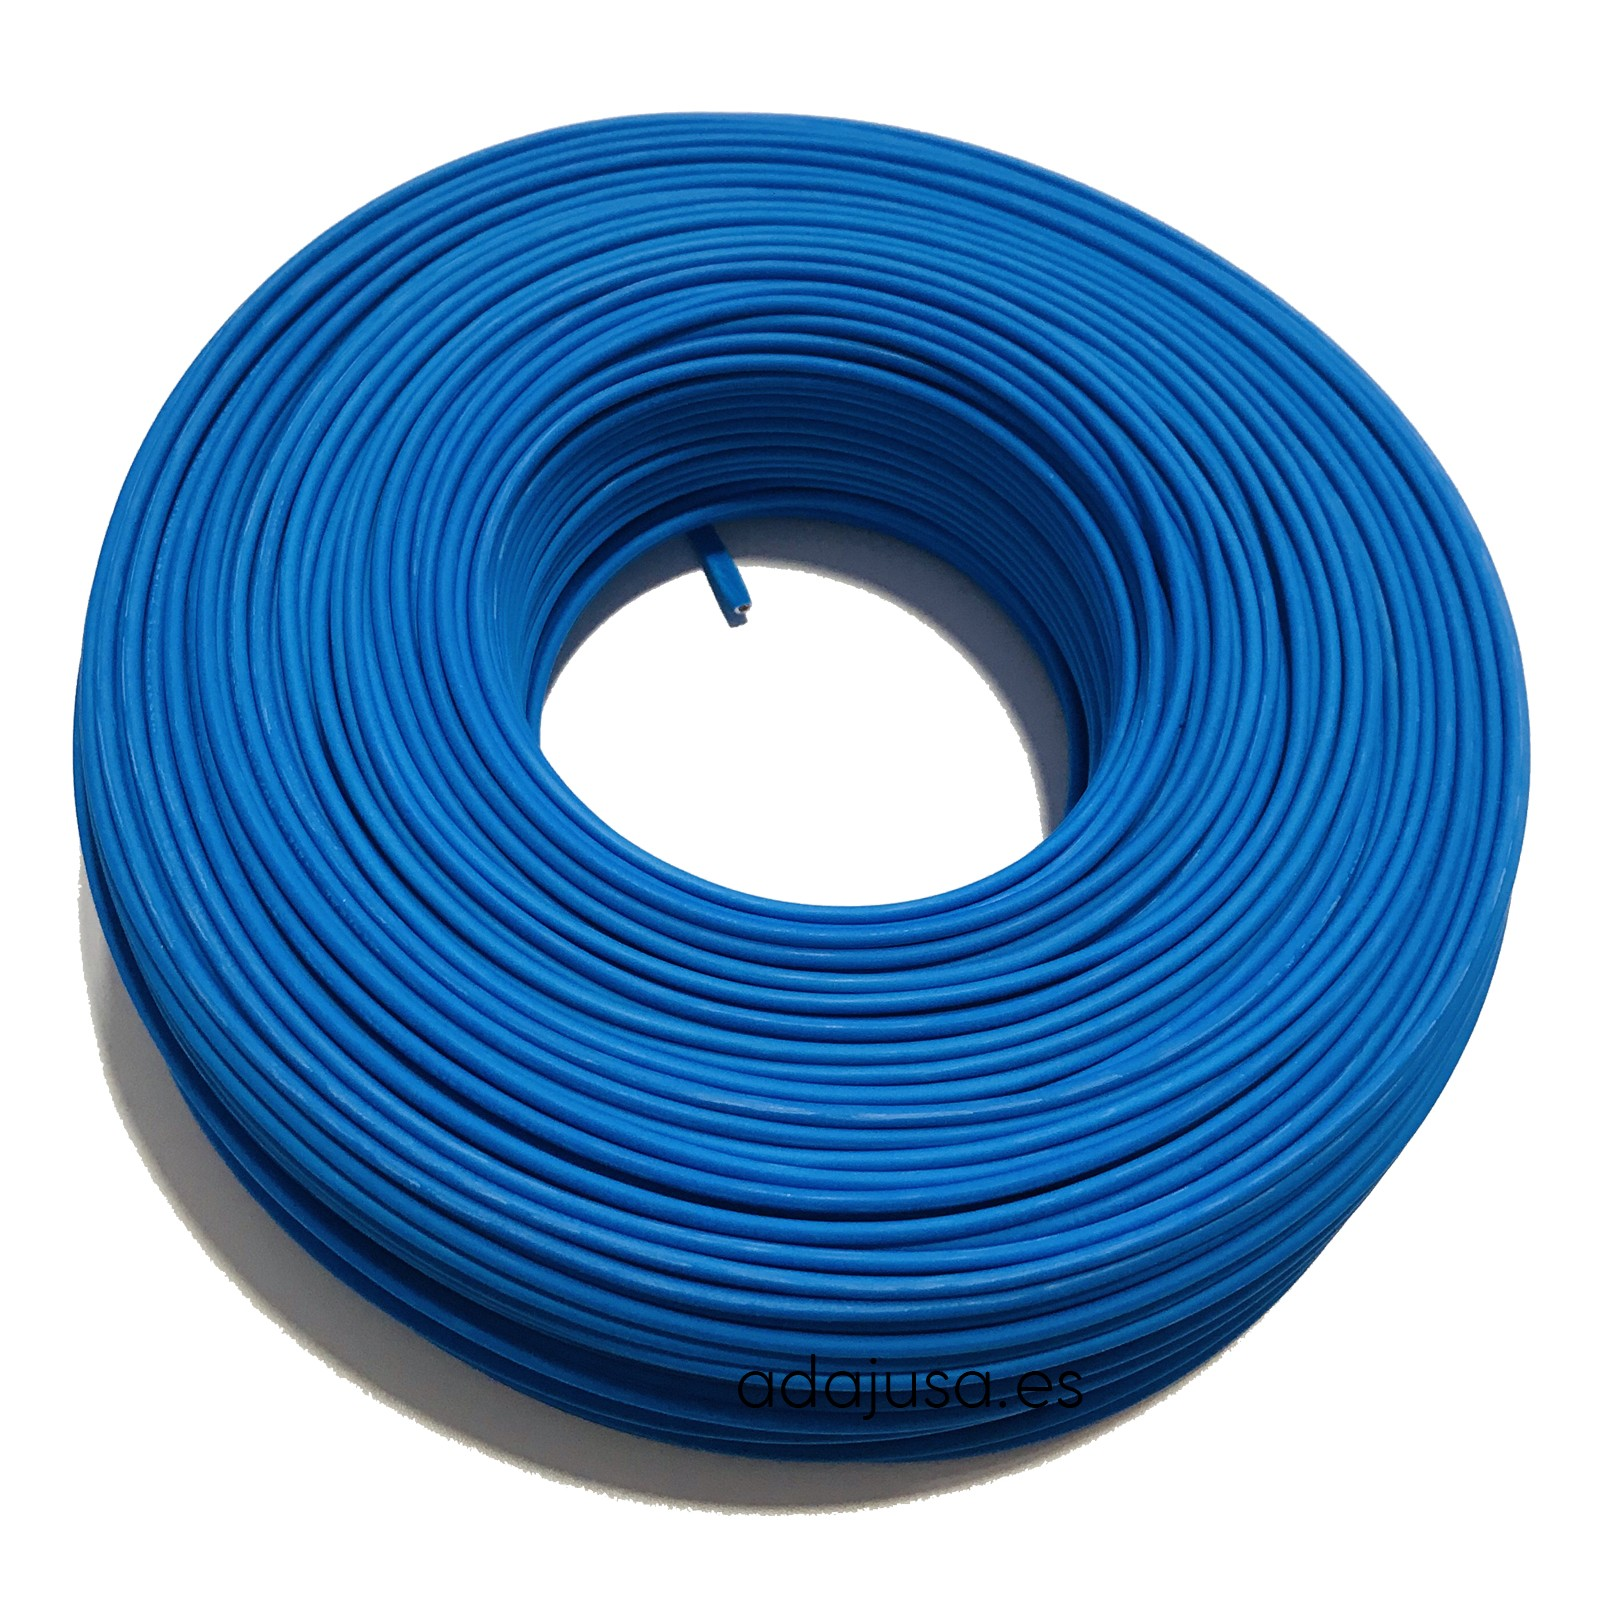 Manguera Libre De Halogenos 3x1 5 Cable Flexible Unipolar 1 5 Mm2 Color Azul